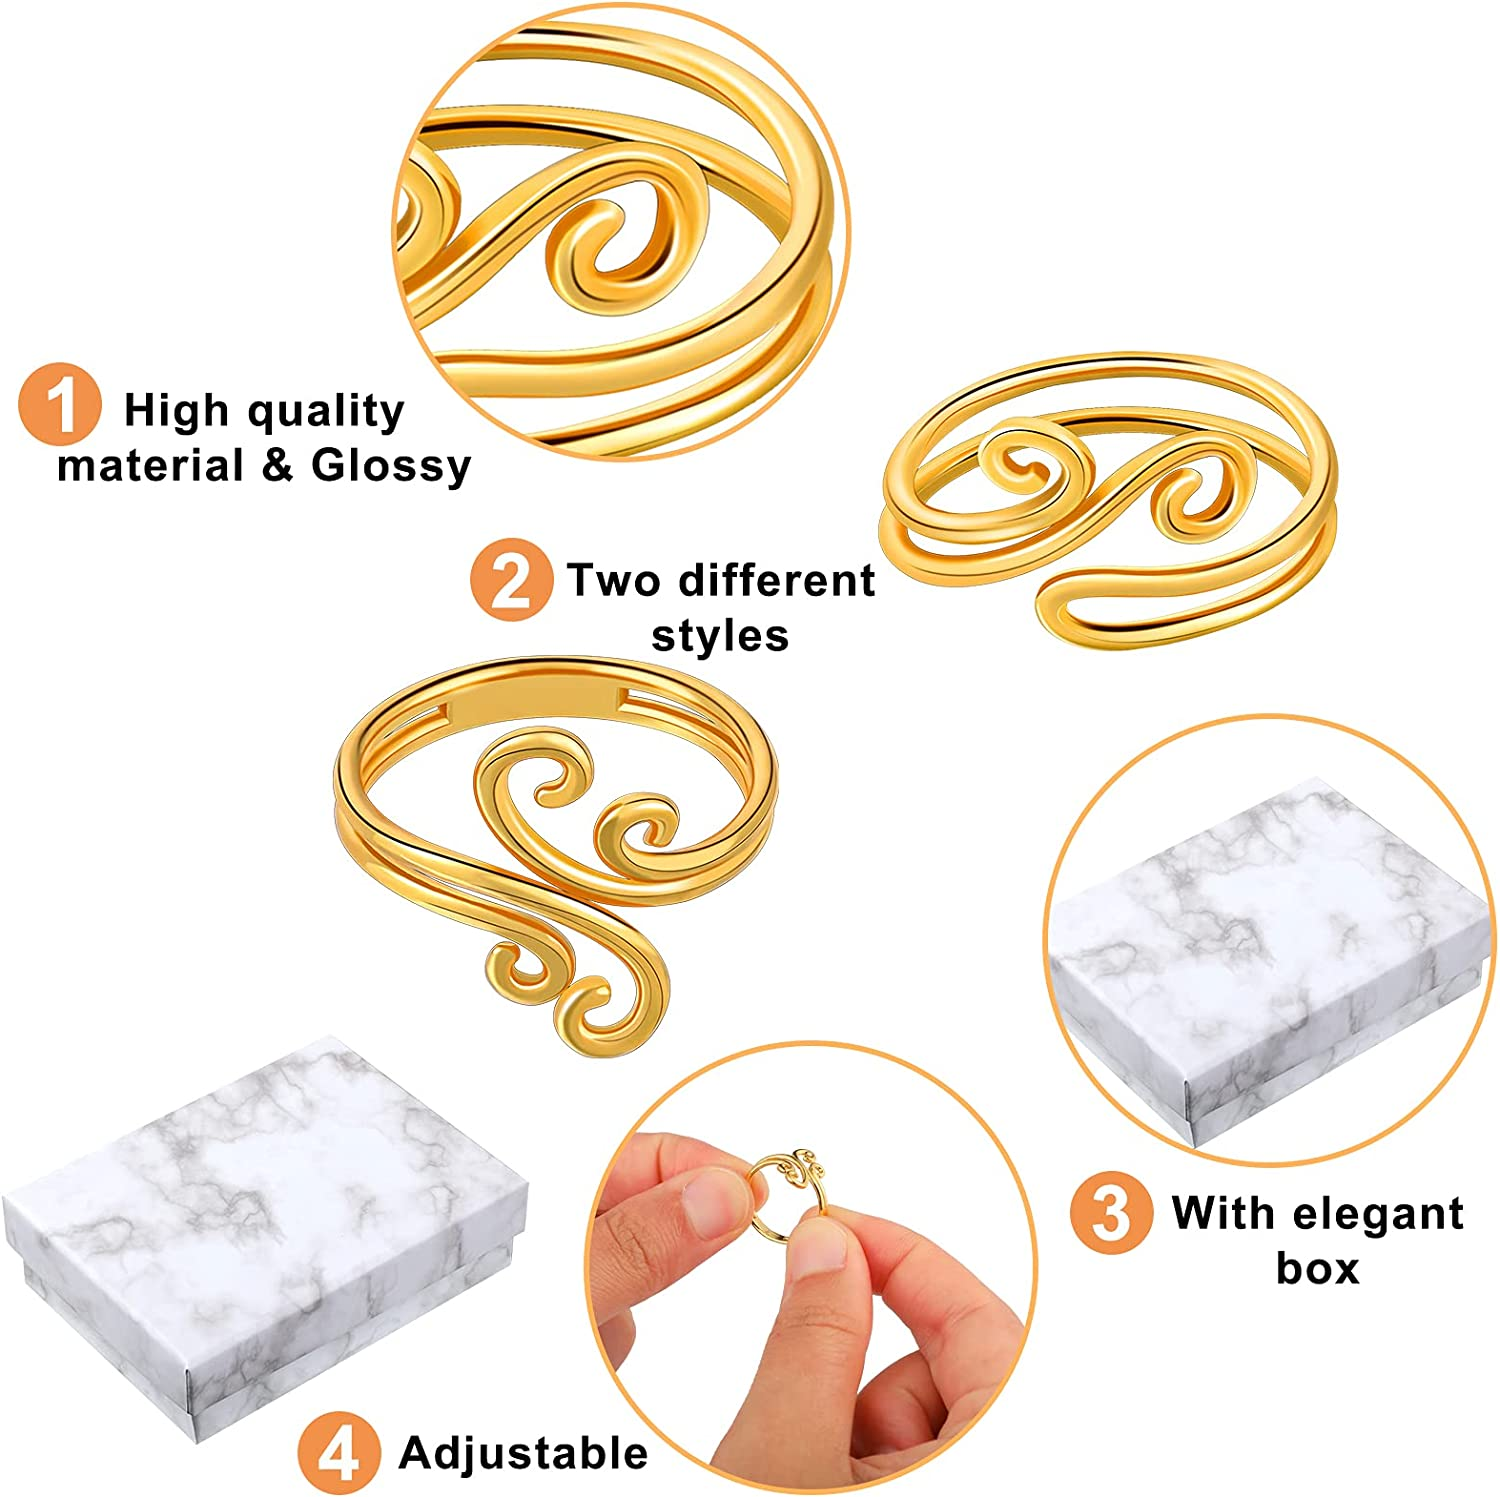 4 Pieces Adjustable Toe Rings Swirl Toe Rings Adjustable Gold Band Ring Gold Band Toe Ring Gold Metal Open Rings Swirl Thumb Ring Adjustable Gold Foot Ring with Box for Women Girl Teen Girlfriend